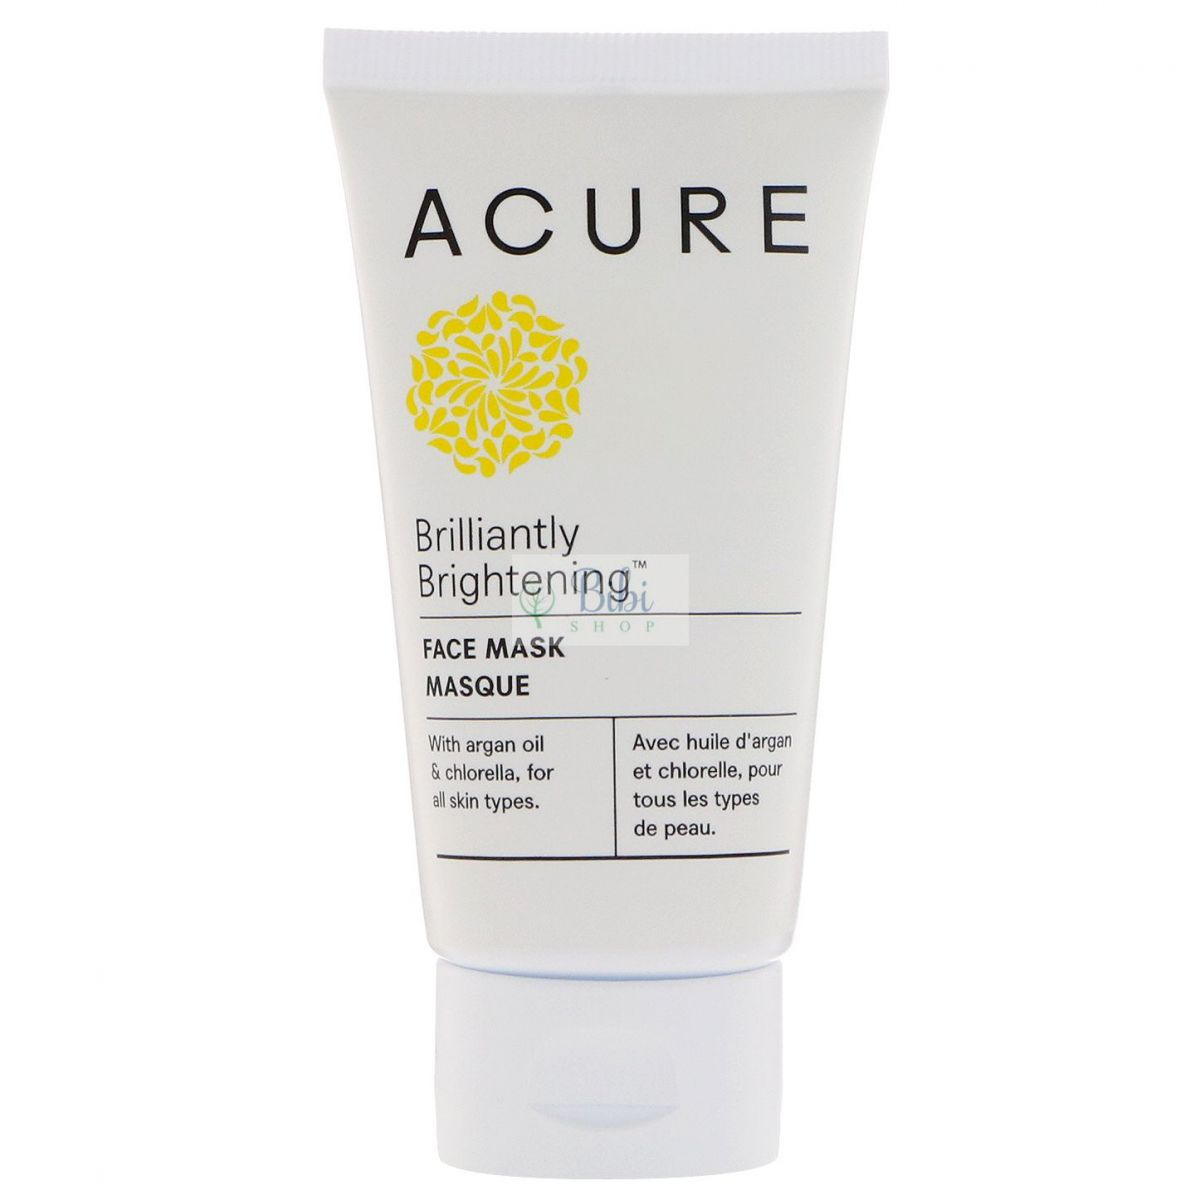 mat-na-duong-lam-sang-da-acure-brilliantly-brightening-face-mask